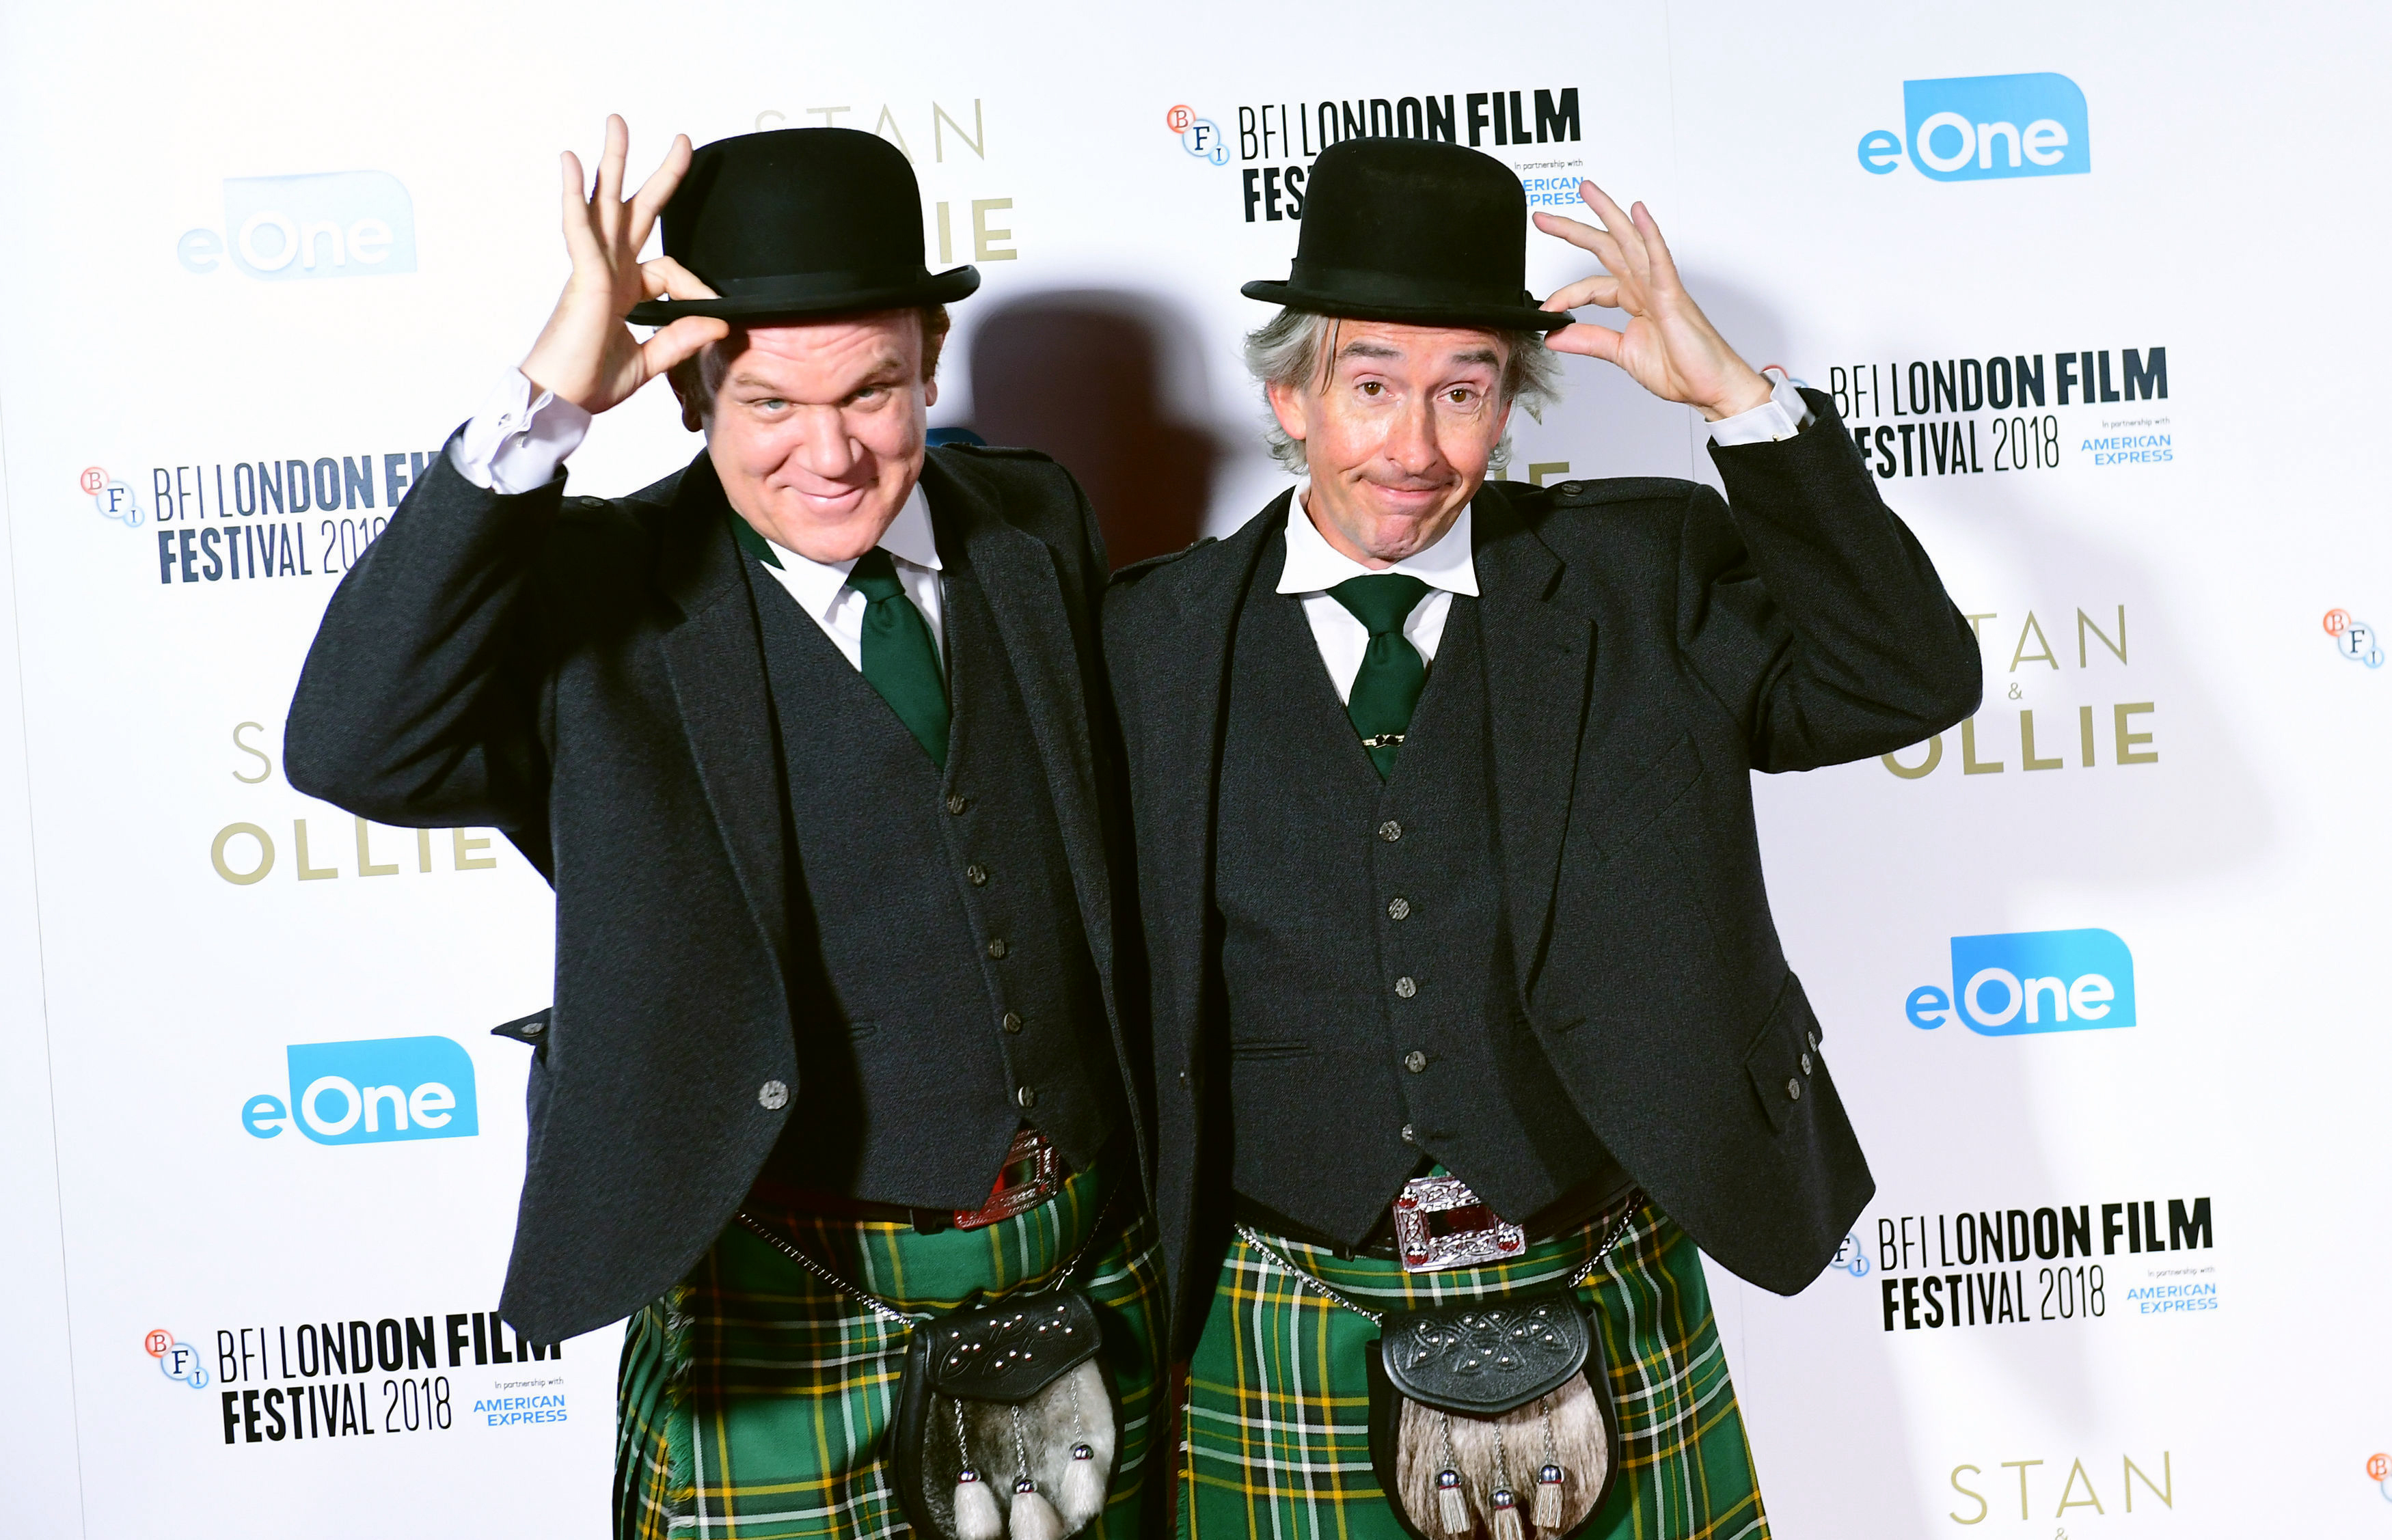 John C. Reilly and Steve Coogan attending the Stan and Ollie Premiere (PA)